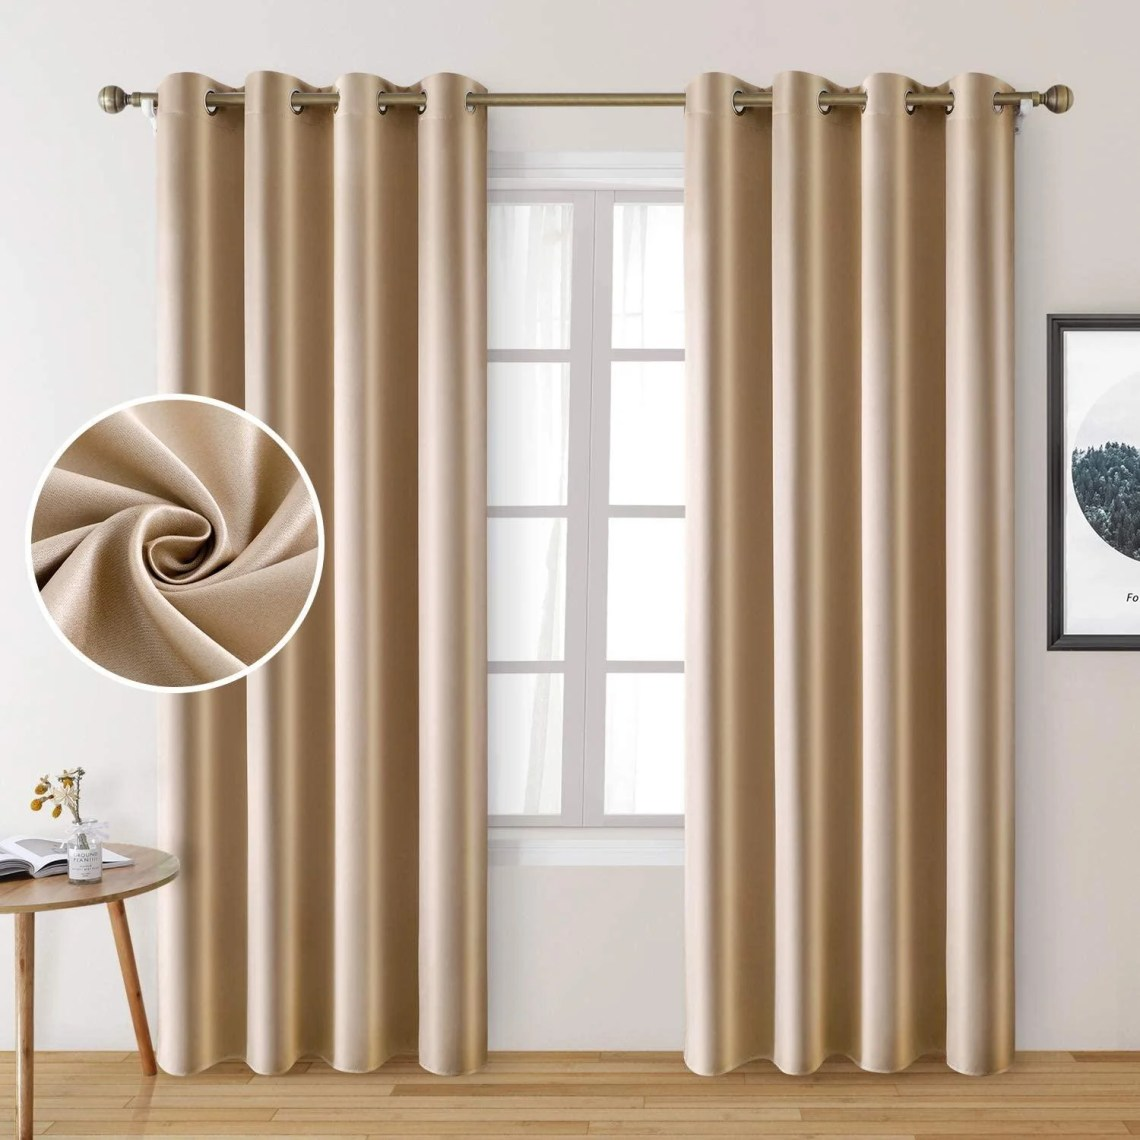 Eider Ivory 2 Panels Faux Silk Curtains For Nursery Greyish White Blackout Curtains For Girls Room 52 X 84 Inch Room Darkening Curtains For Kids Room Thermal Insulated Window Curtains For